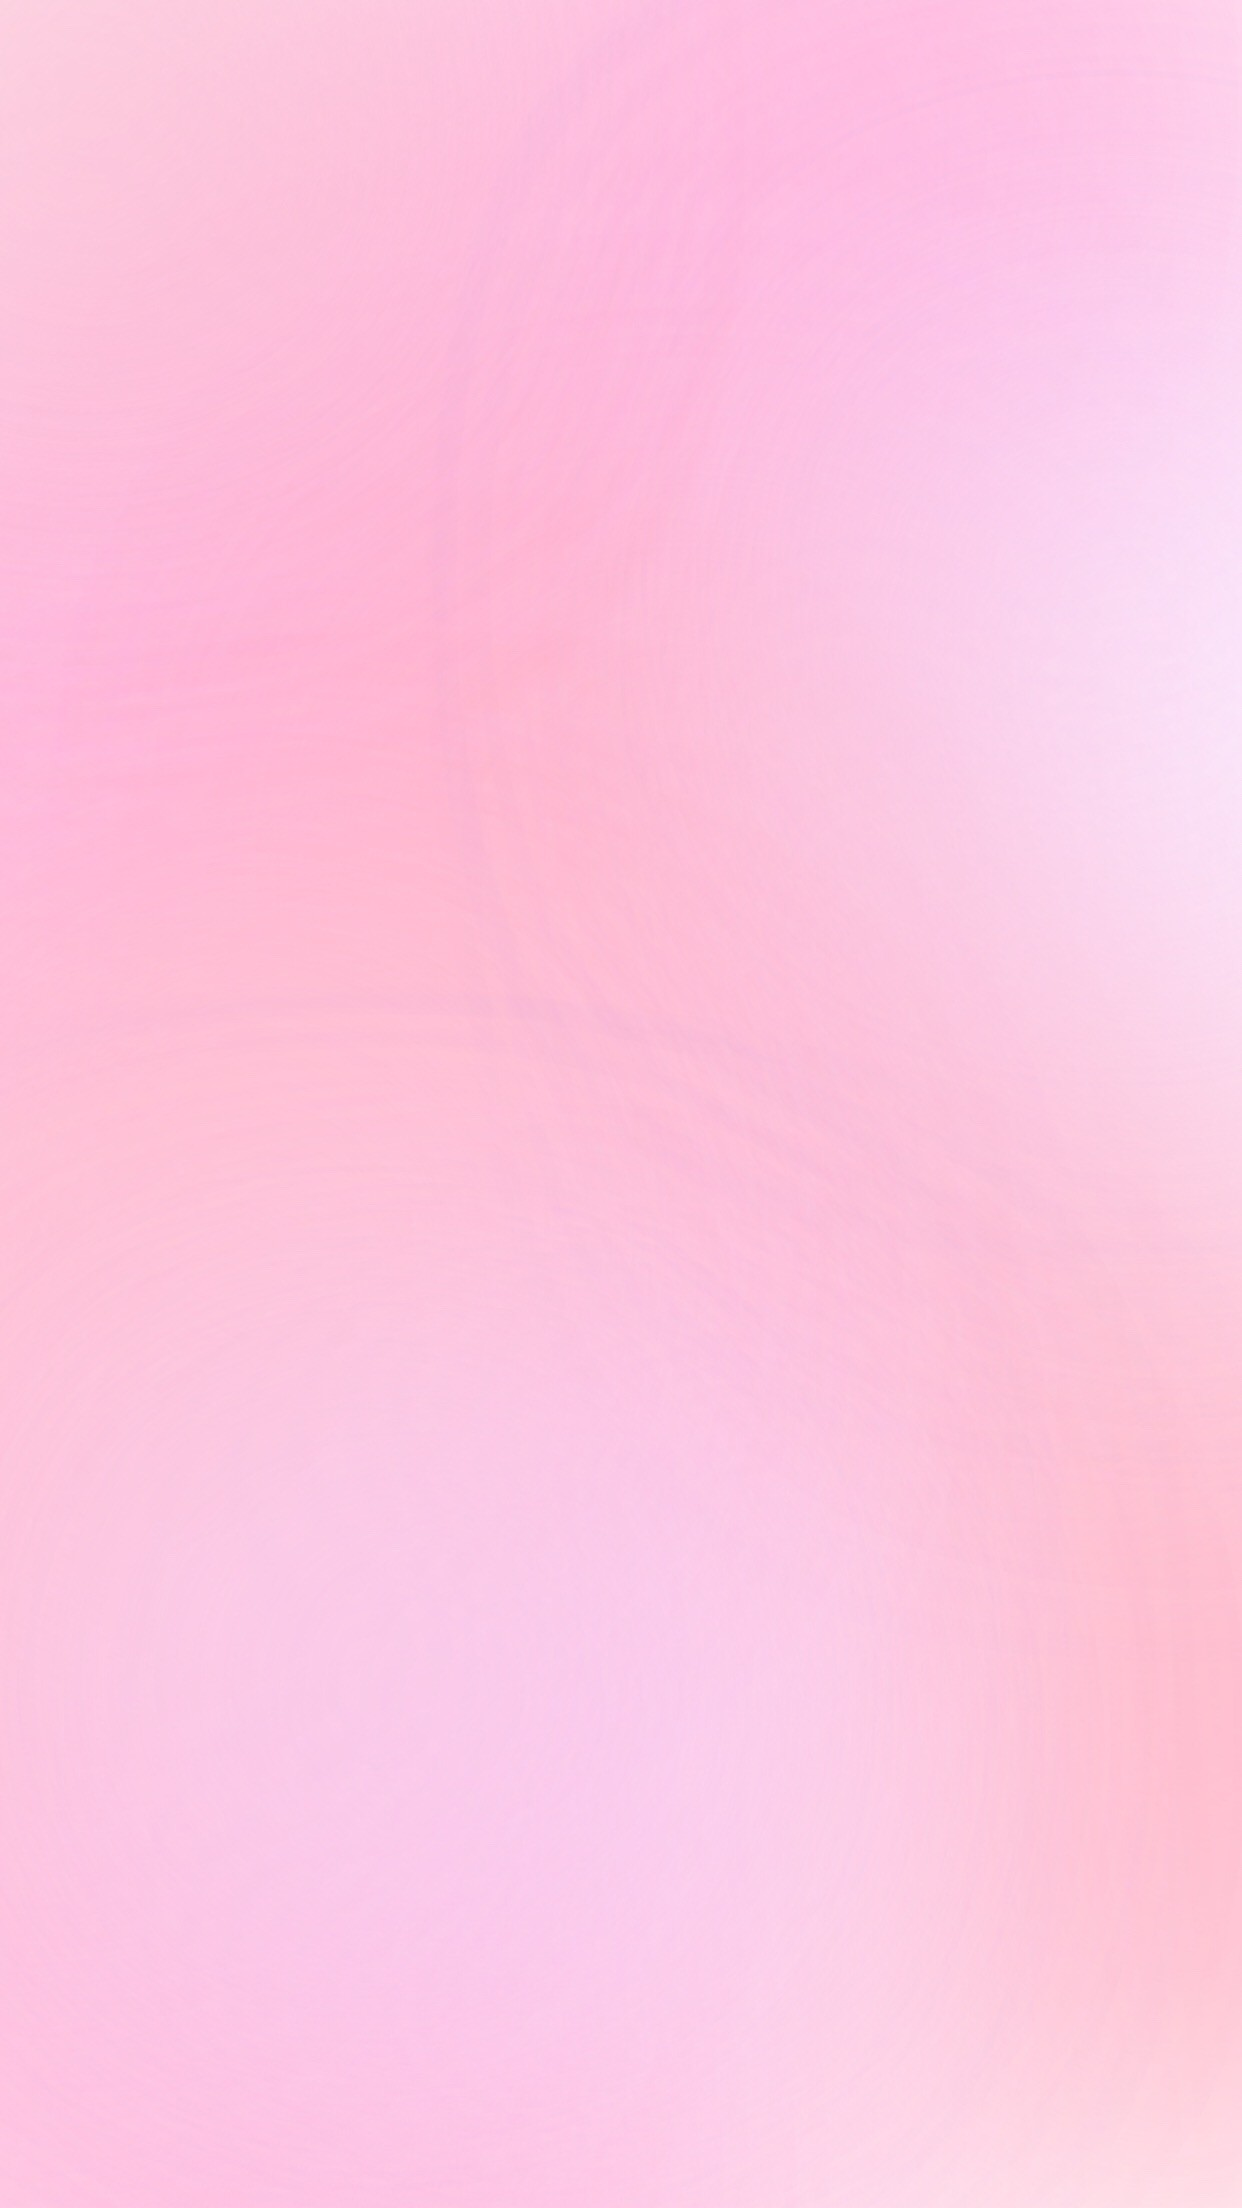 1242x2208 Pastel pink ombre (gradient) phone wallpaper